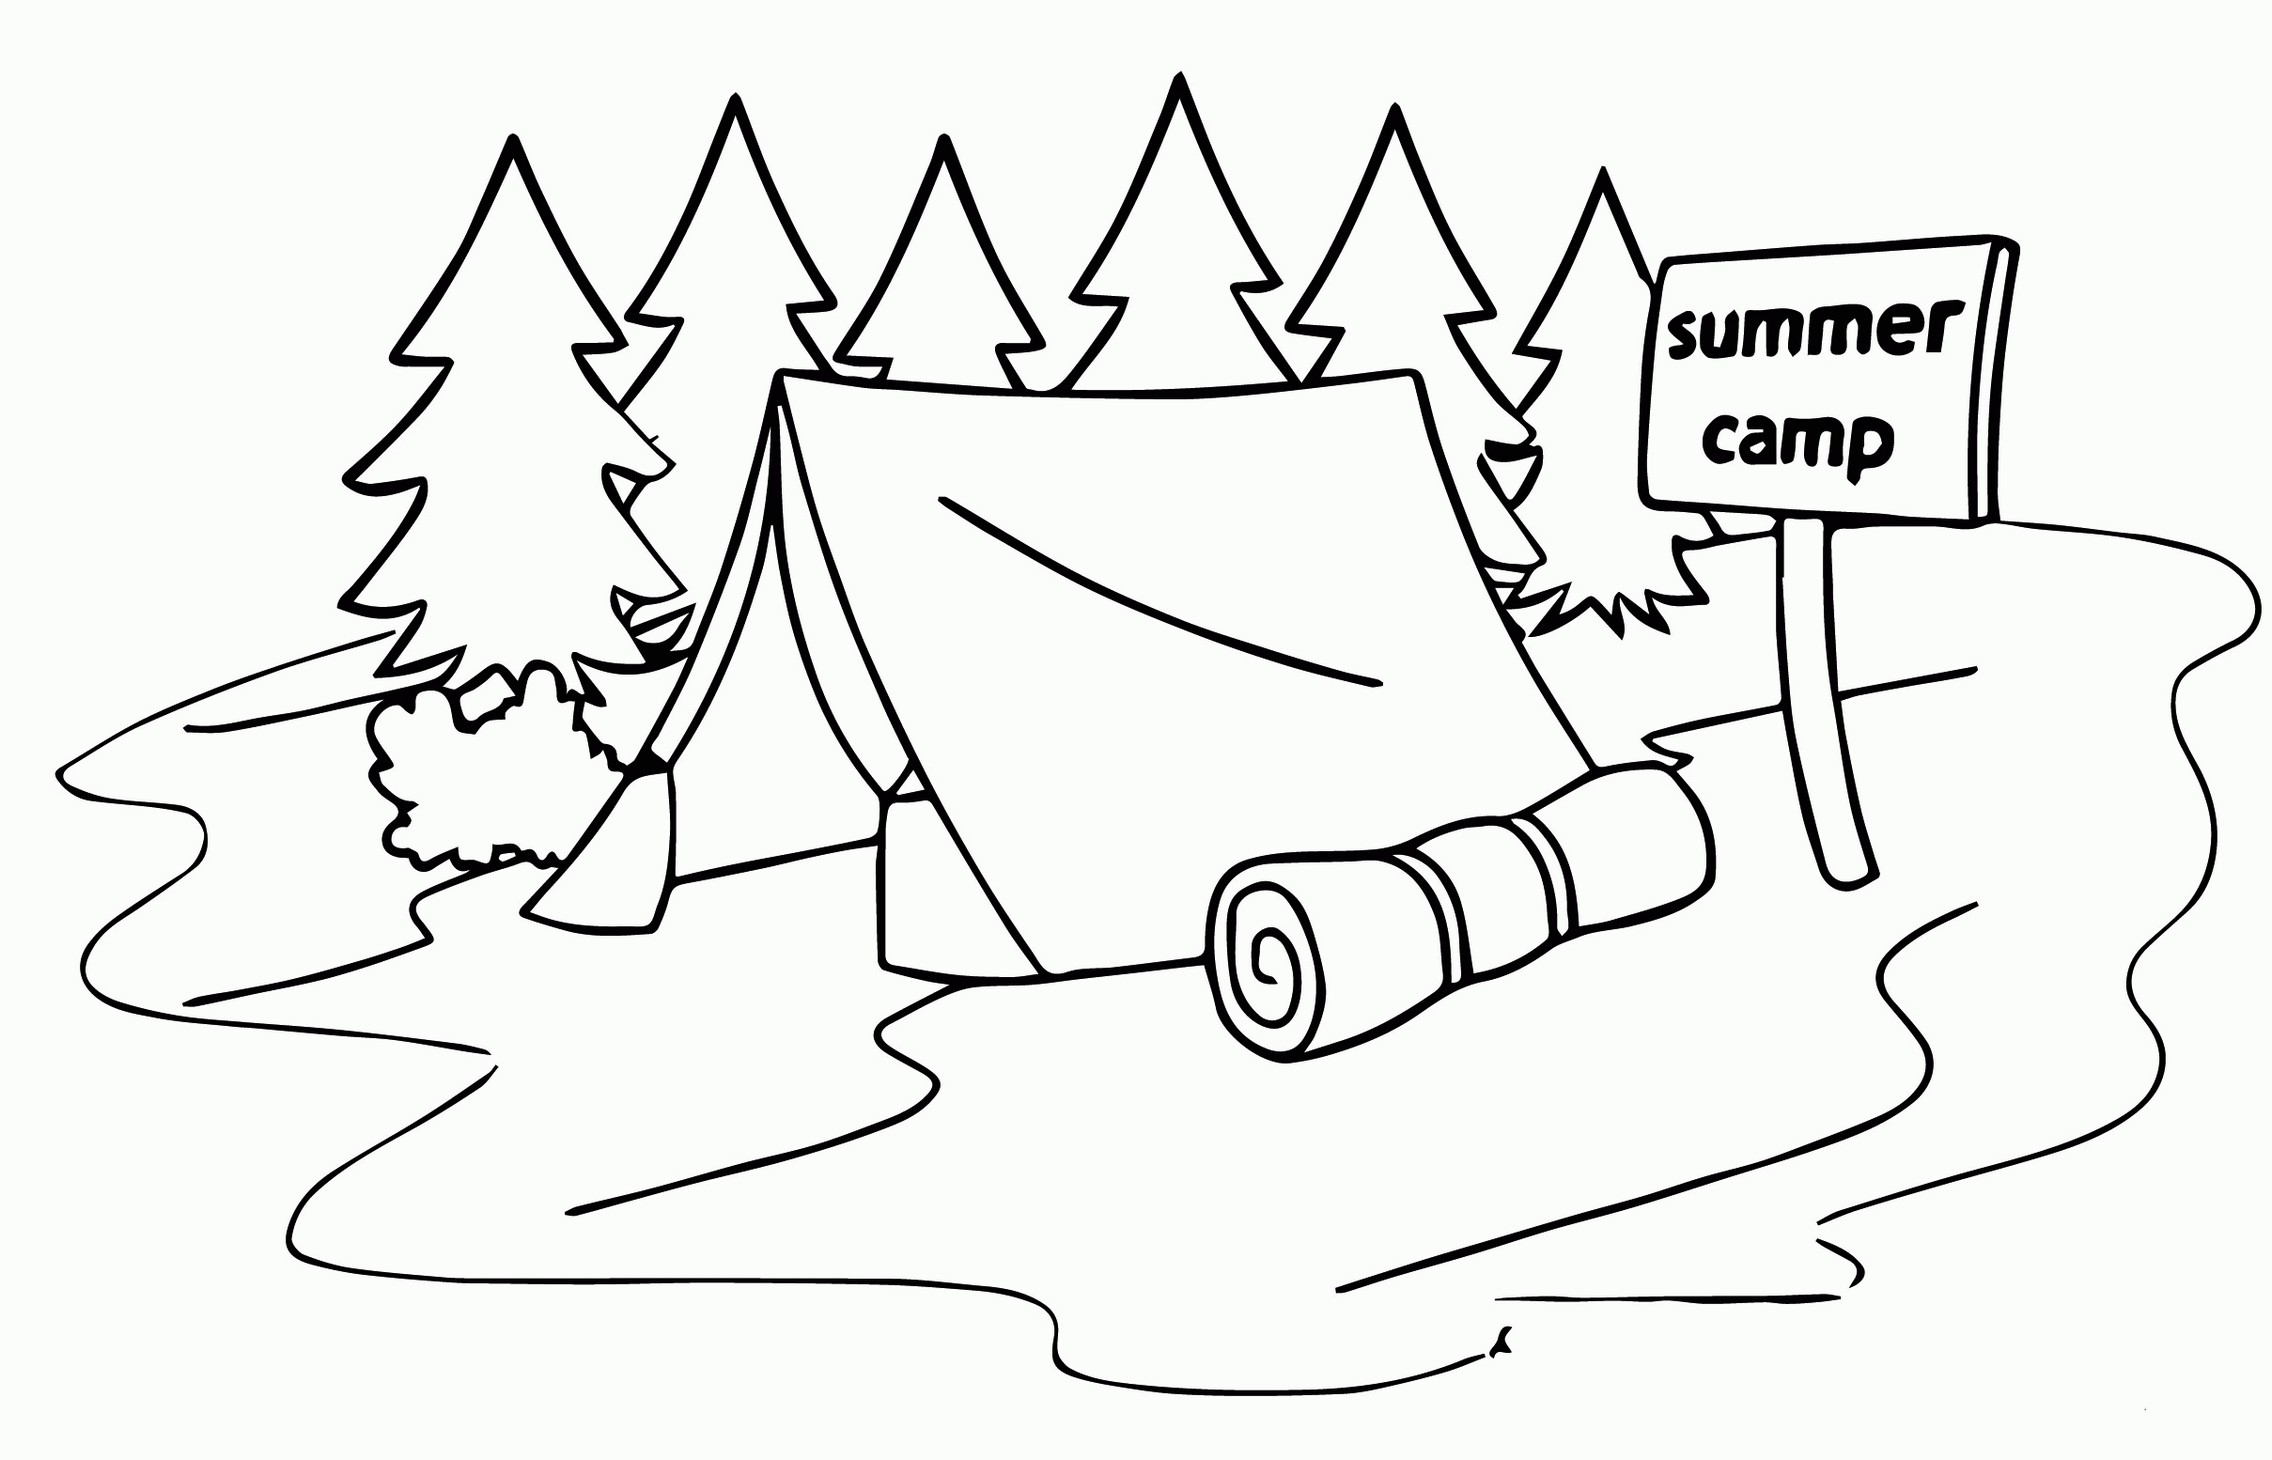 camping coloring pages for kids summer camp tent coloring page for kids for pages camping coloring kids